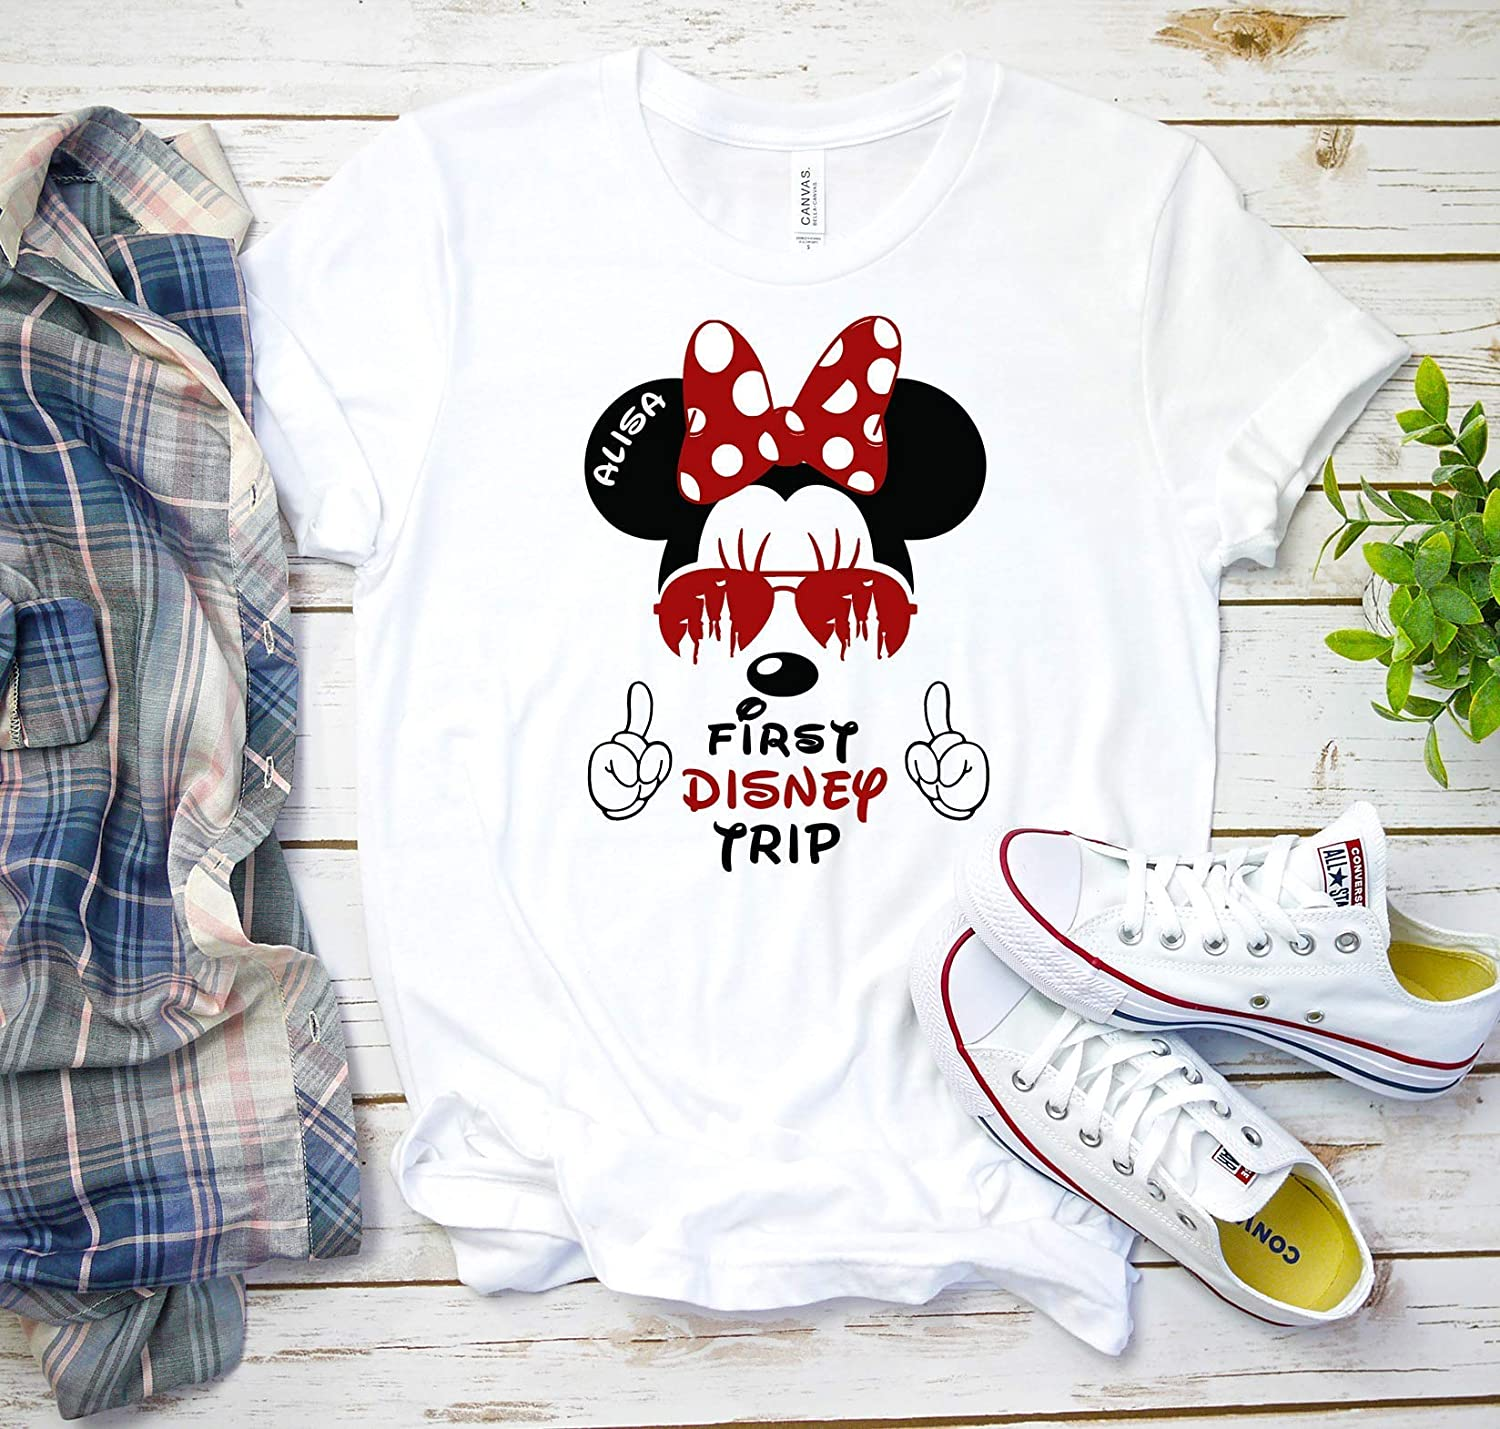 0bd7735bdeccc My First Disney Trip Mickey Mouse Avaitors Shirt, My First Disney Vacation  Shirt, Disney Vacation Shirt Disneyland Shirt Disneyworld D5